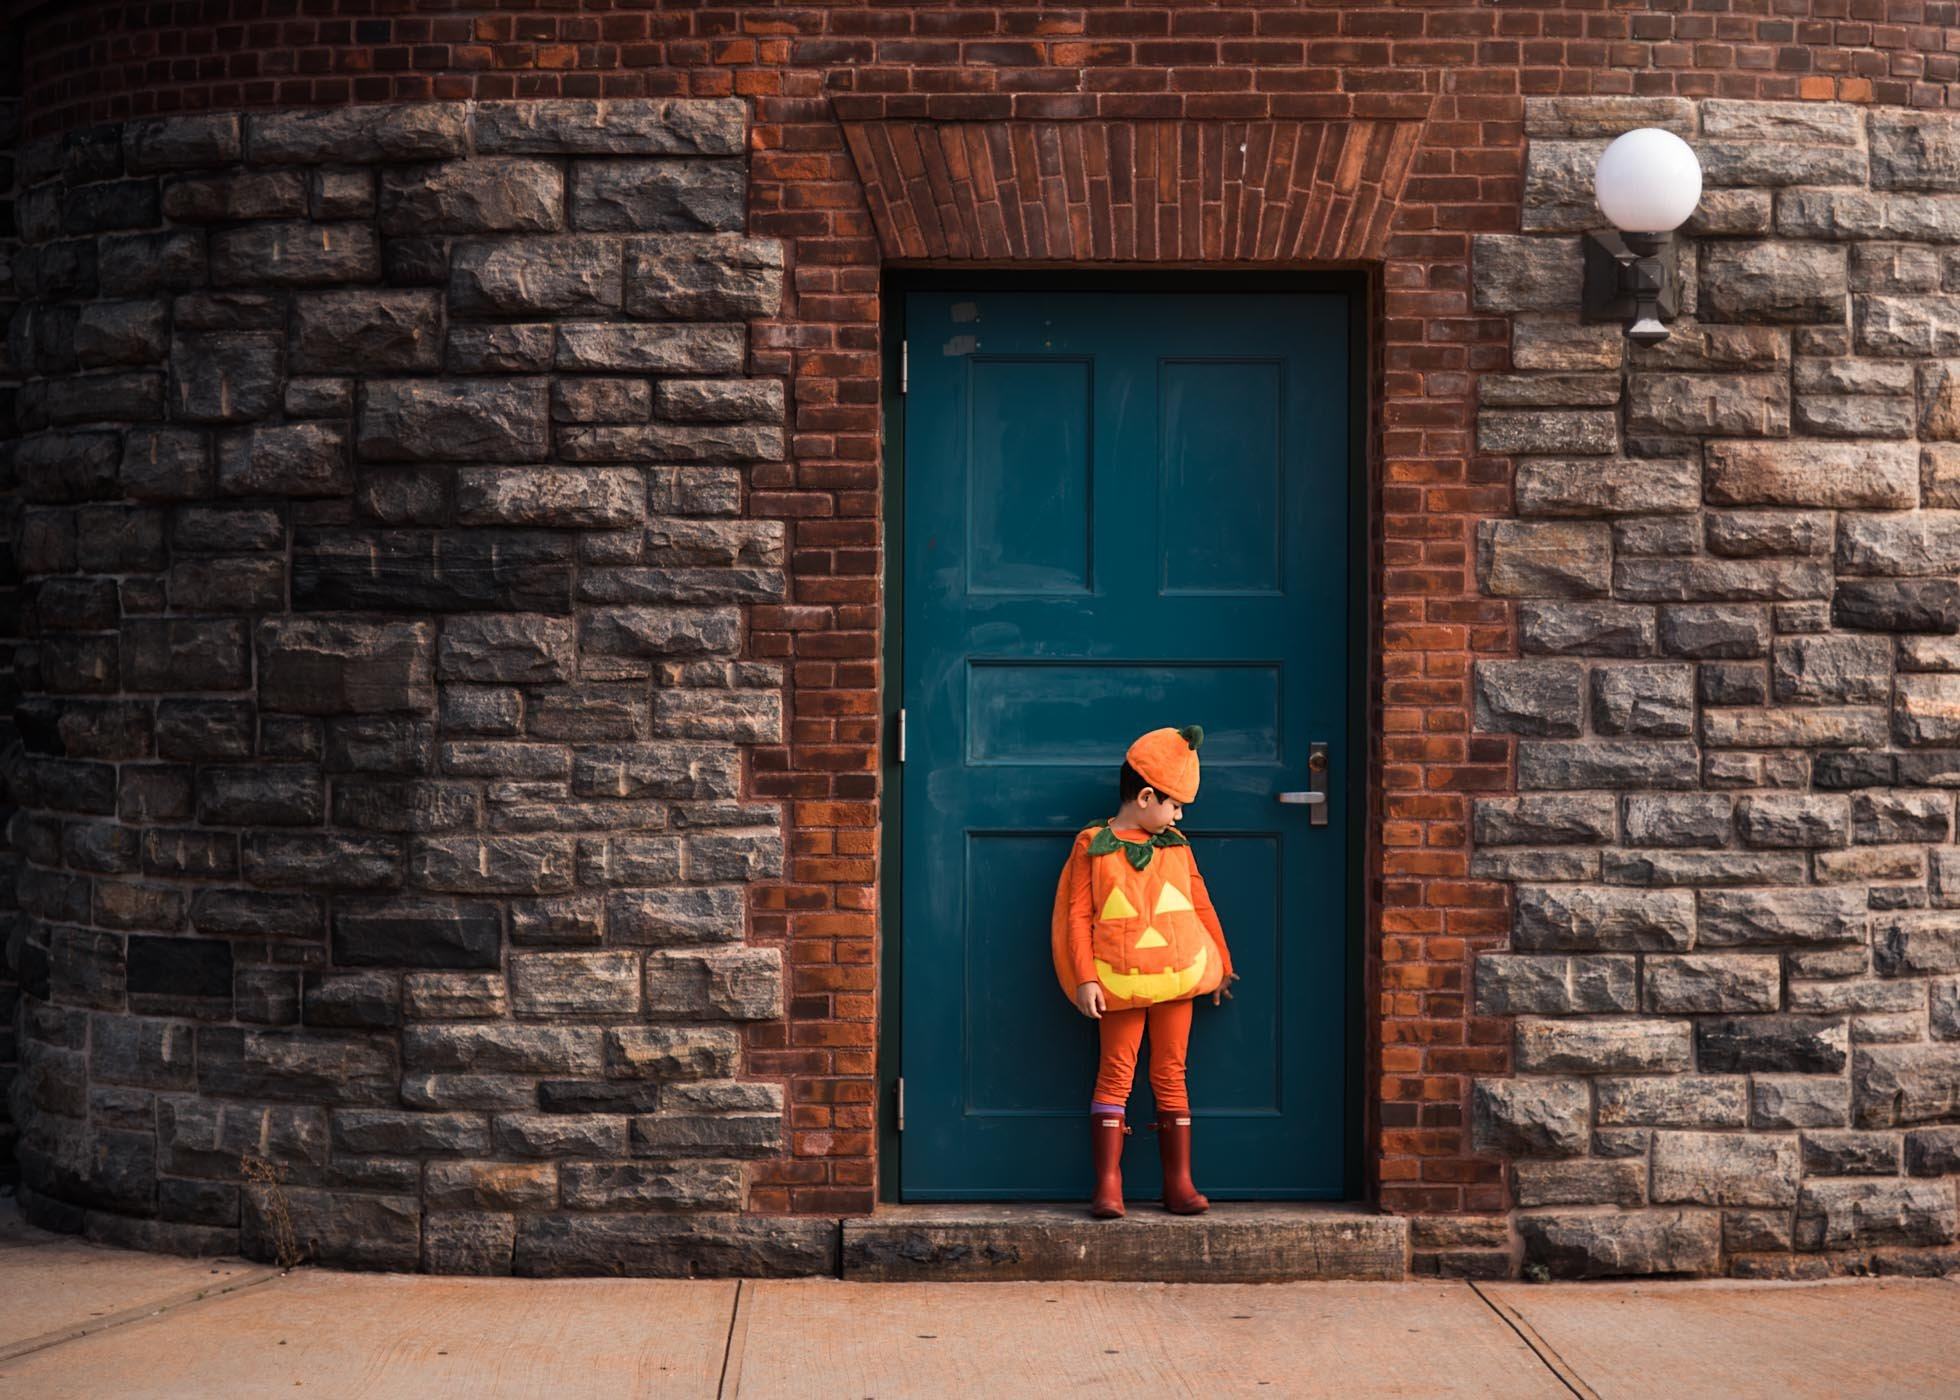 Halloween orange pumpkin against a blue door